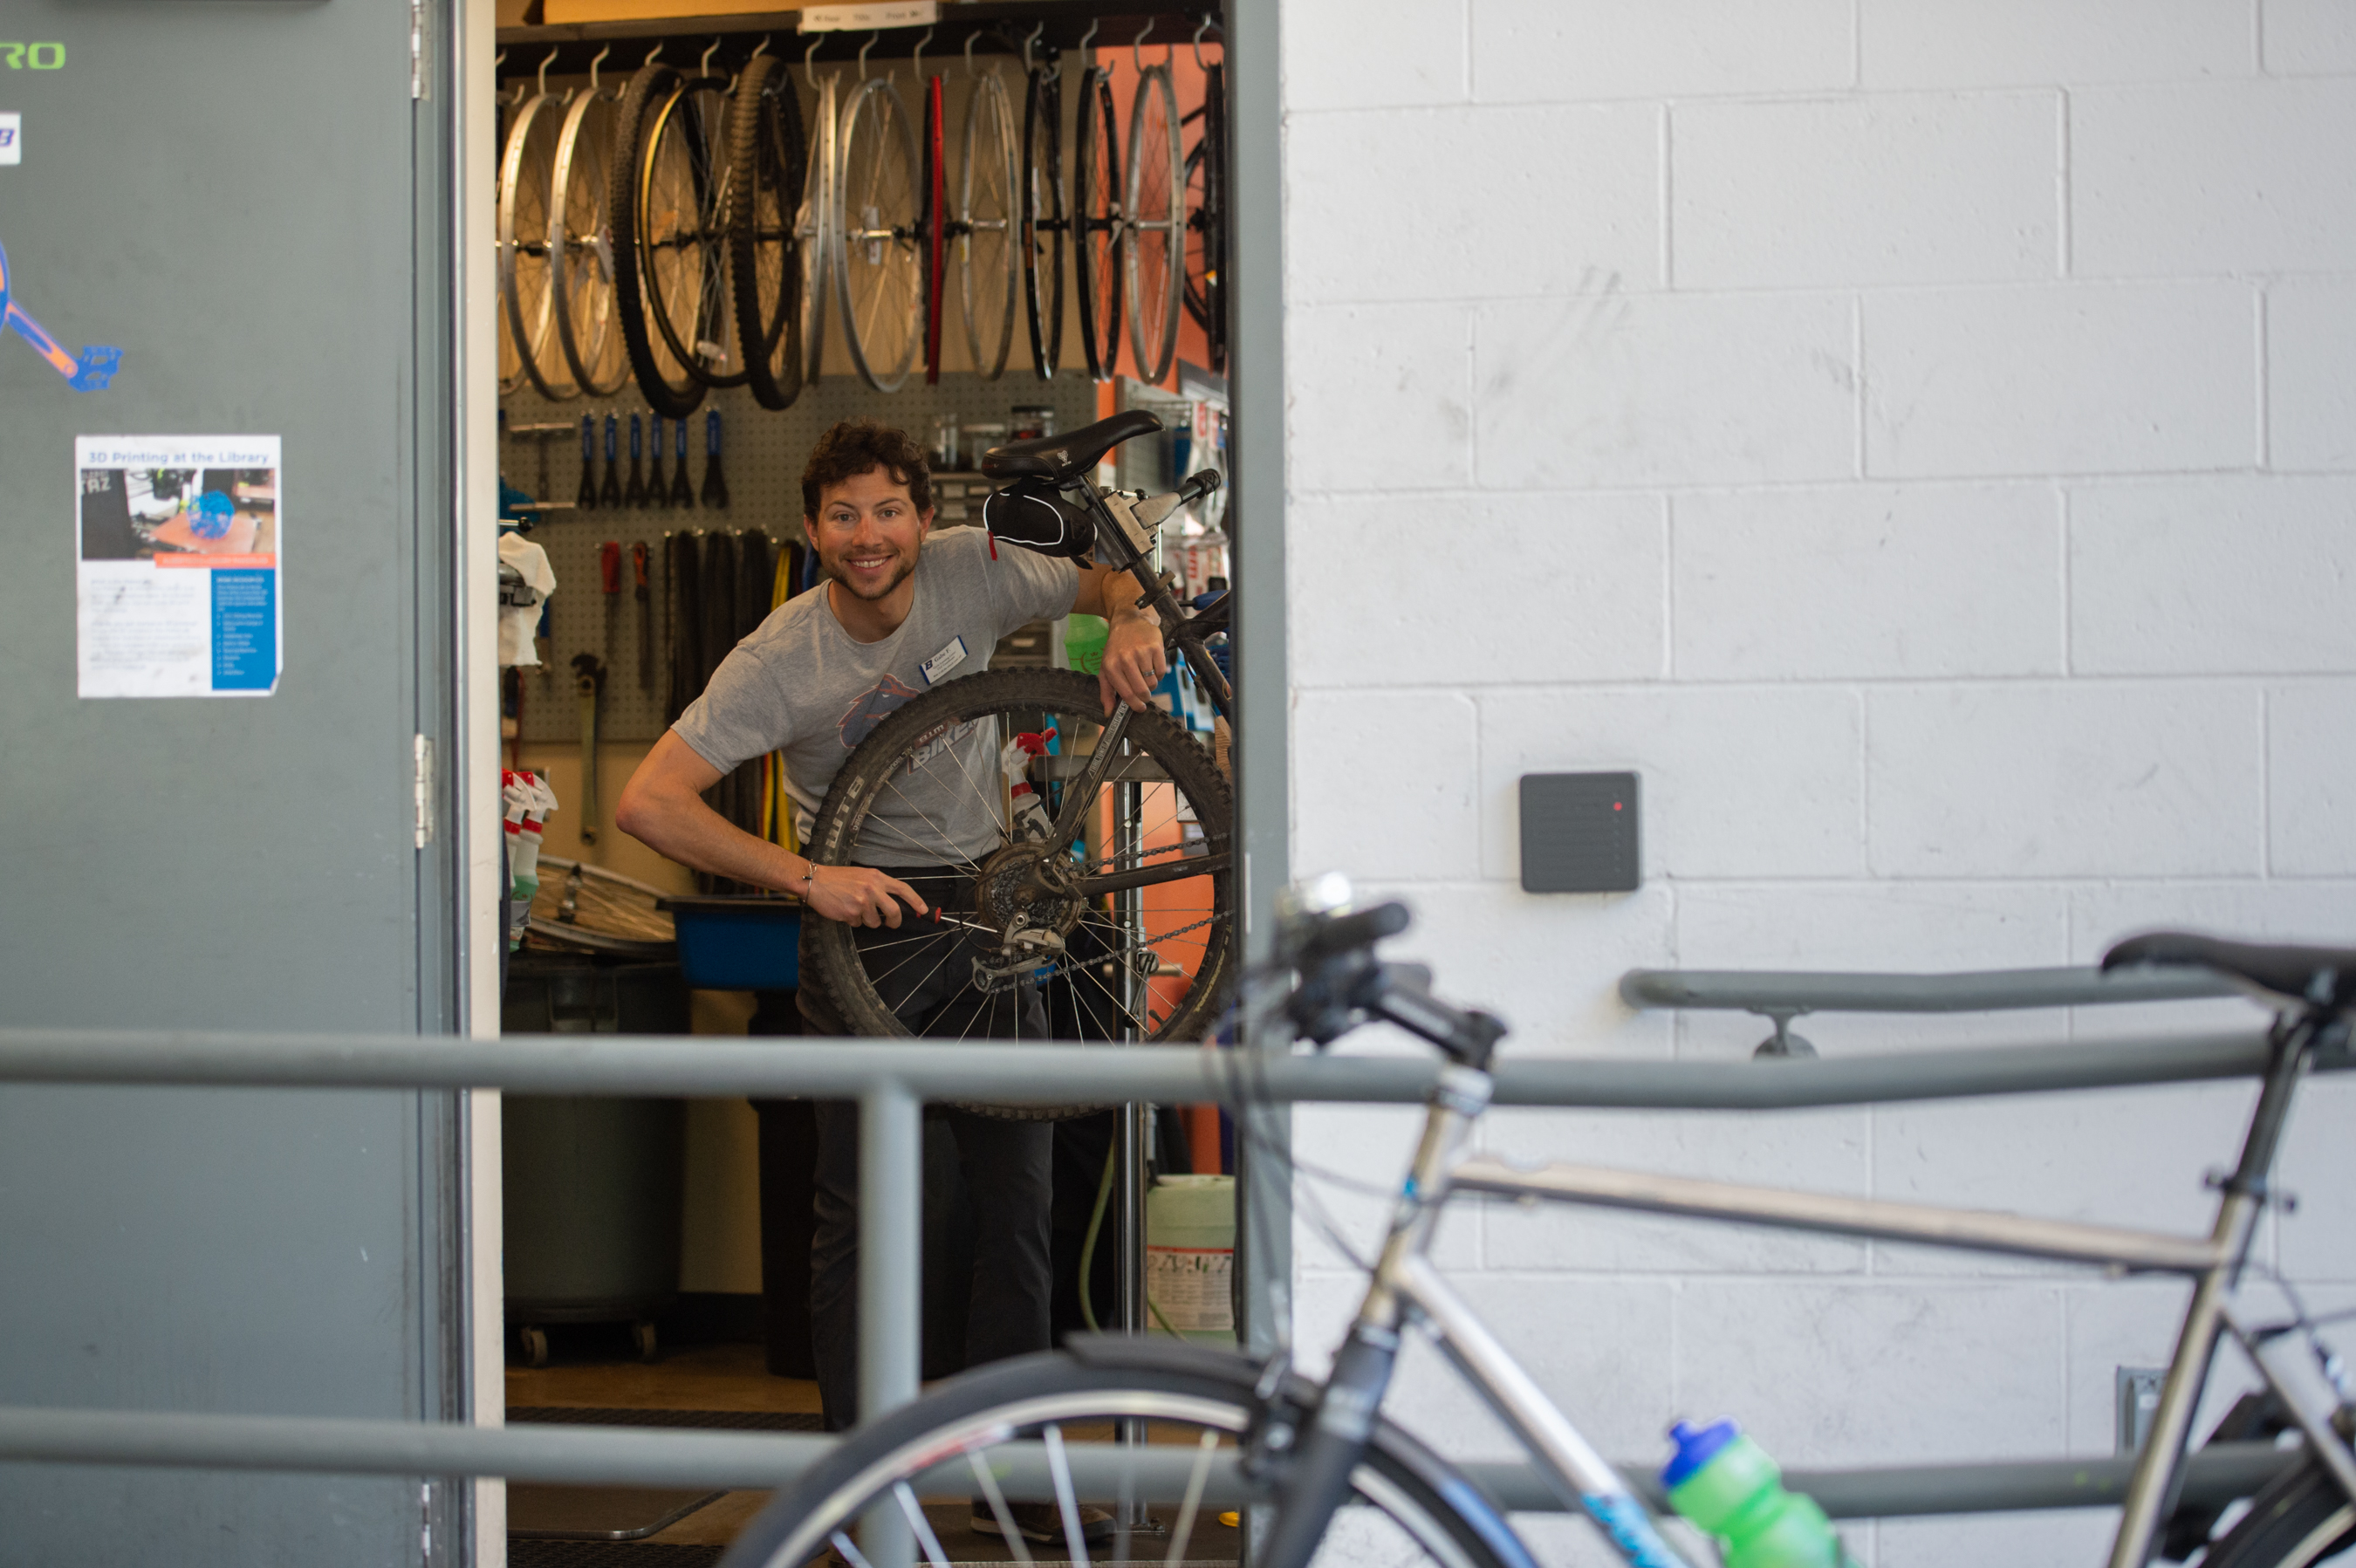 Gabe Finkelstein and the Cycle Learning Center are keeping bikes rolling at a safe distance. Photo, Patrick Sweeney.